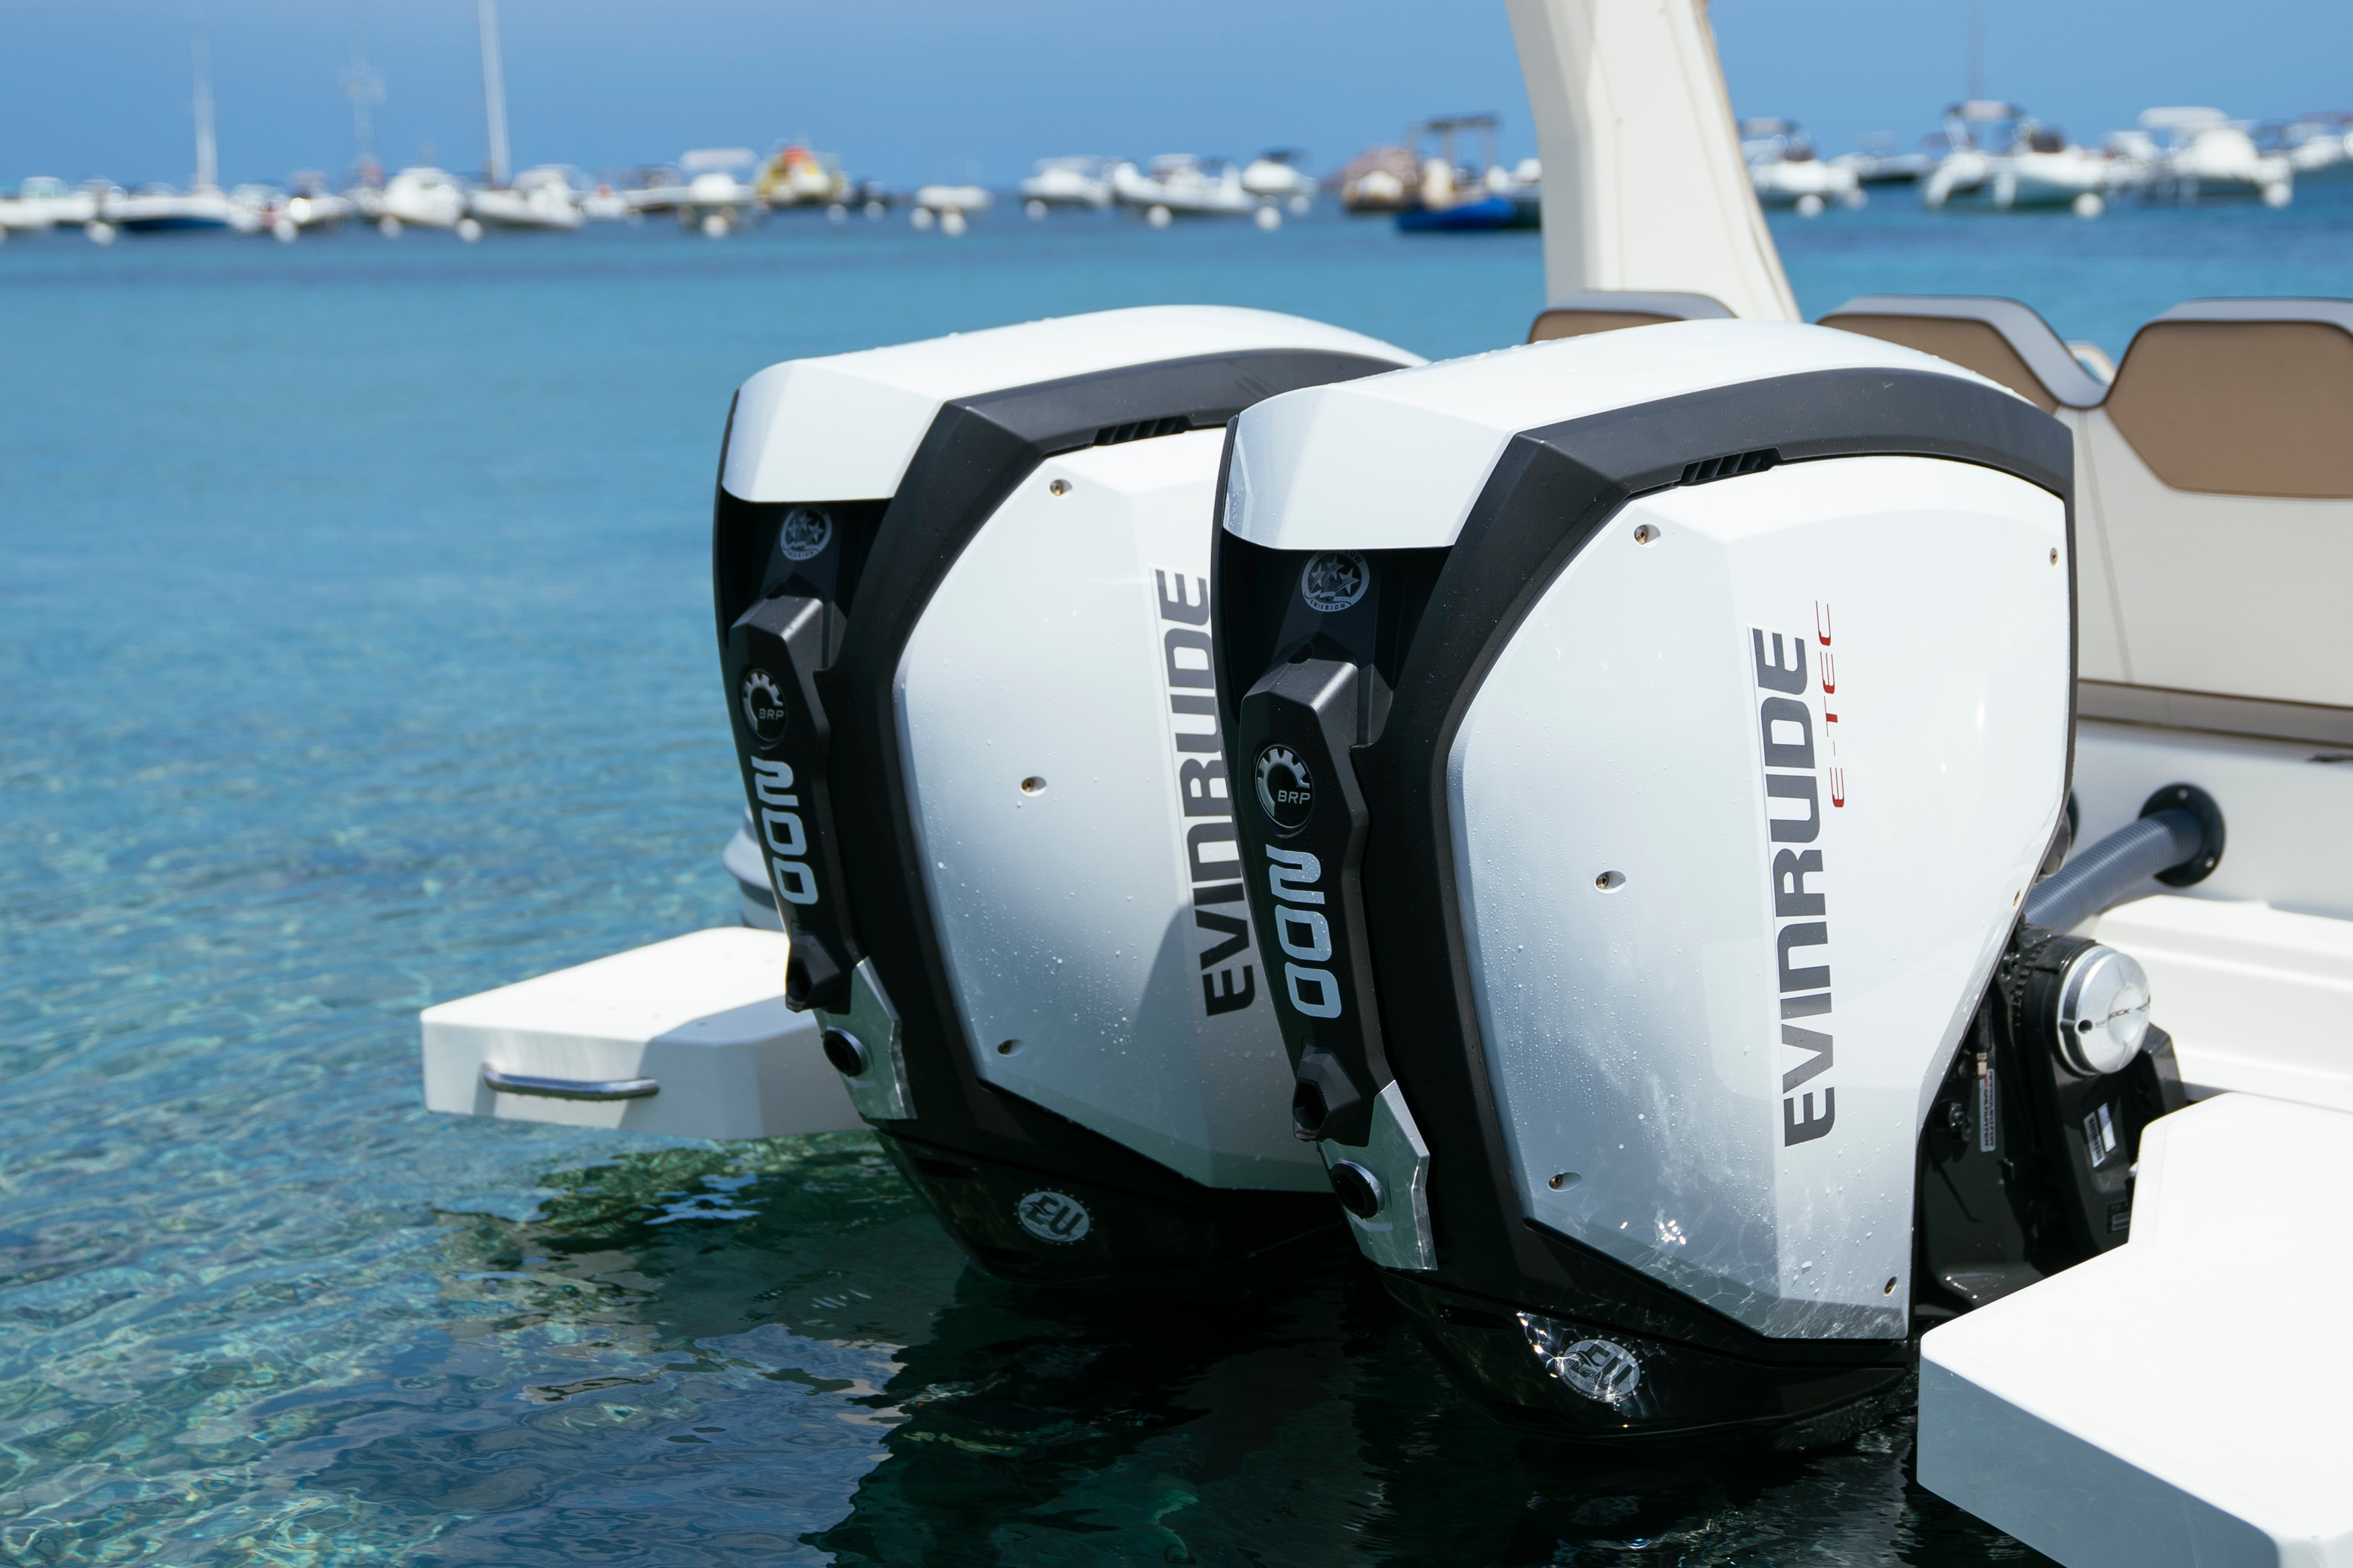 Close-up of a pair of Evinrude boat motors